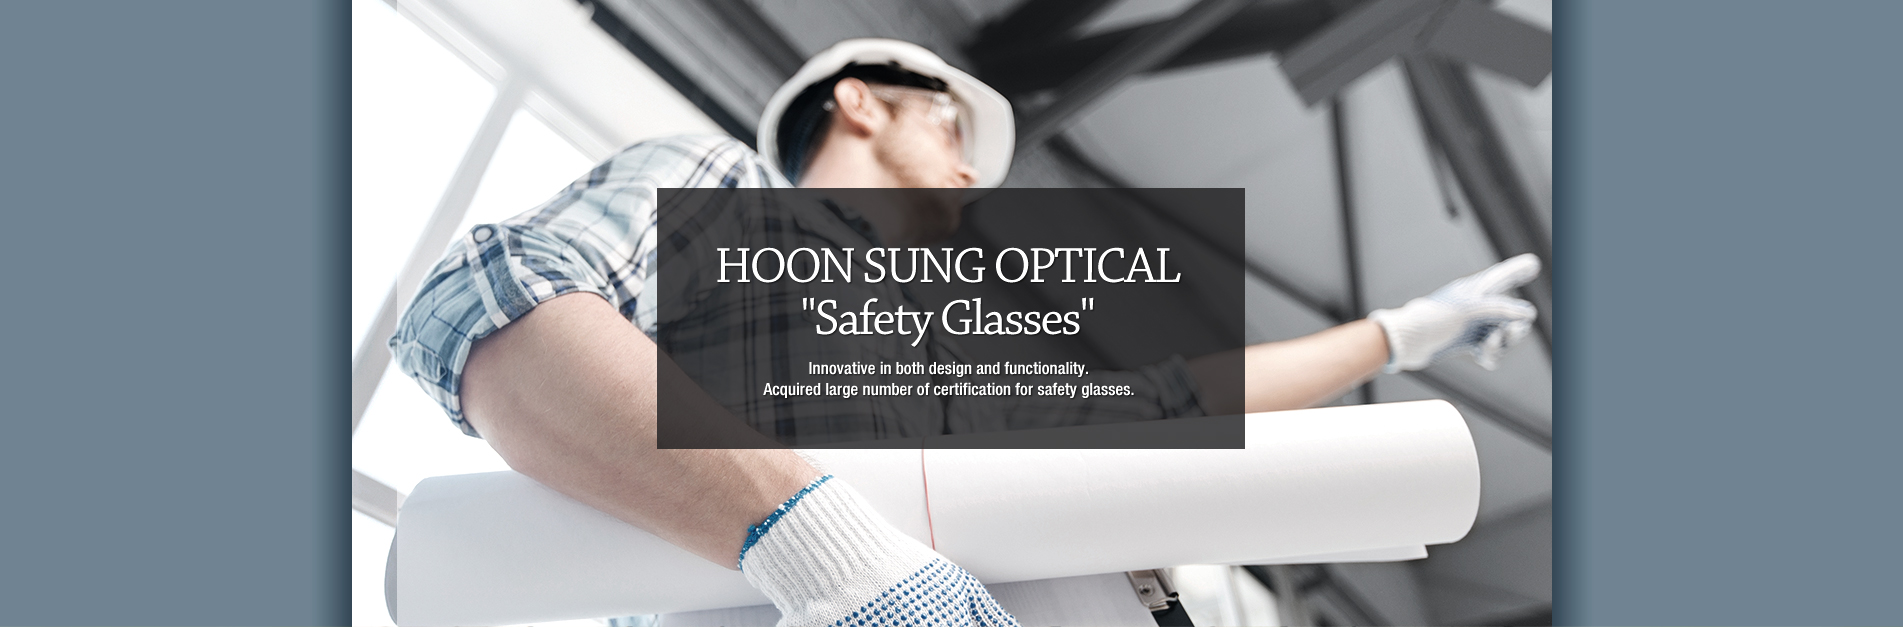 HOON SUNG OPTICAL